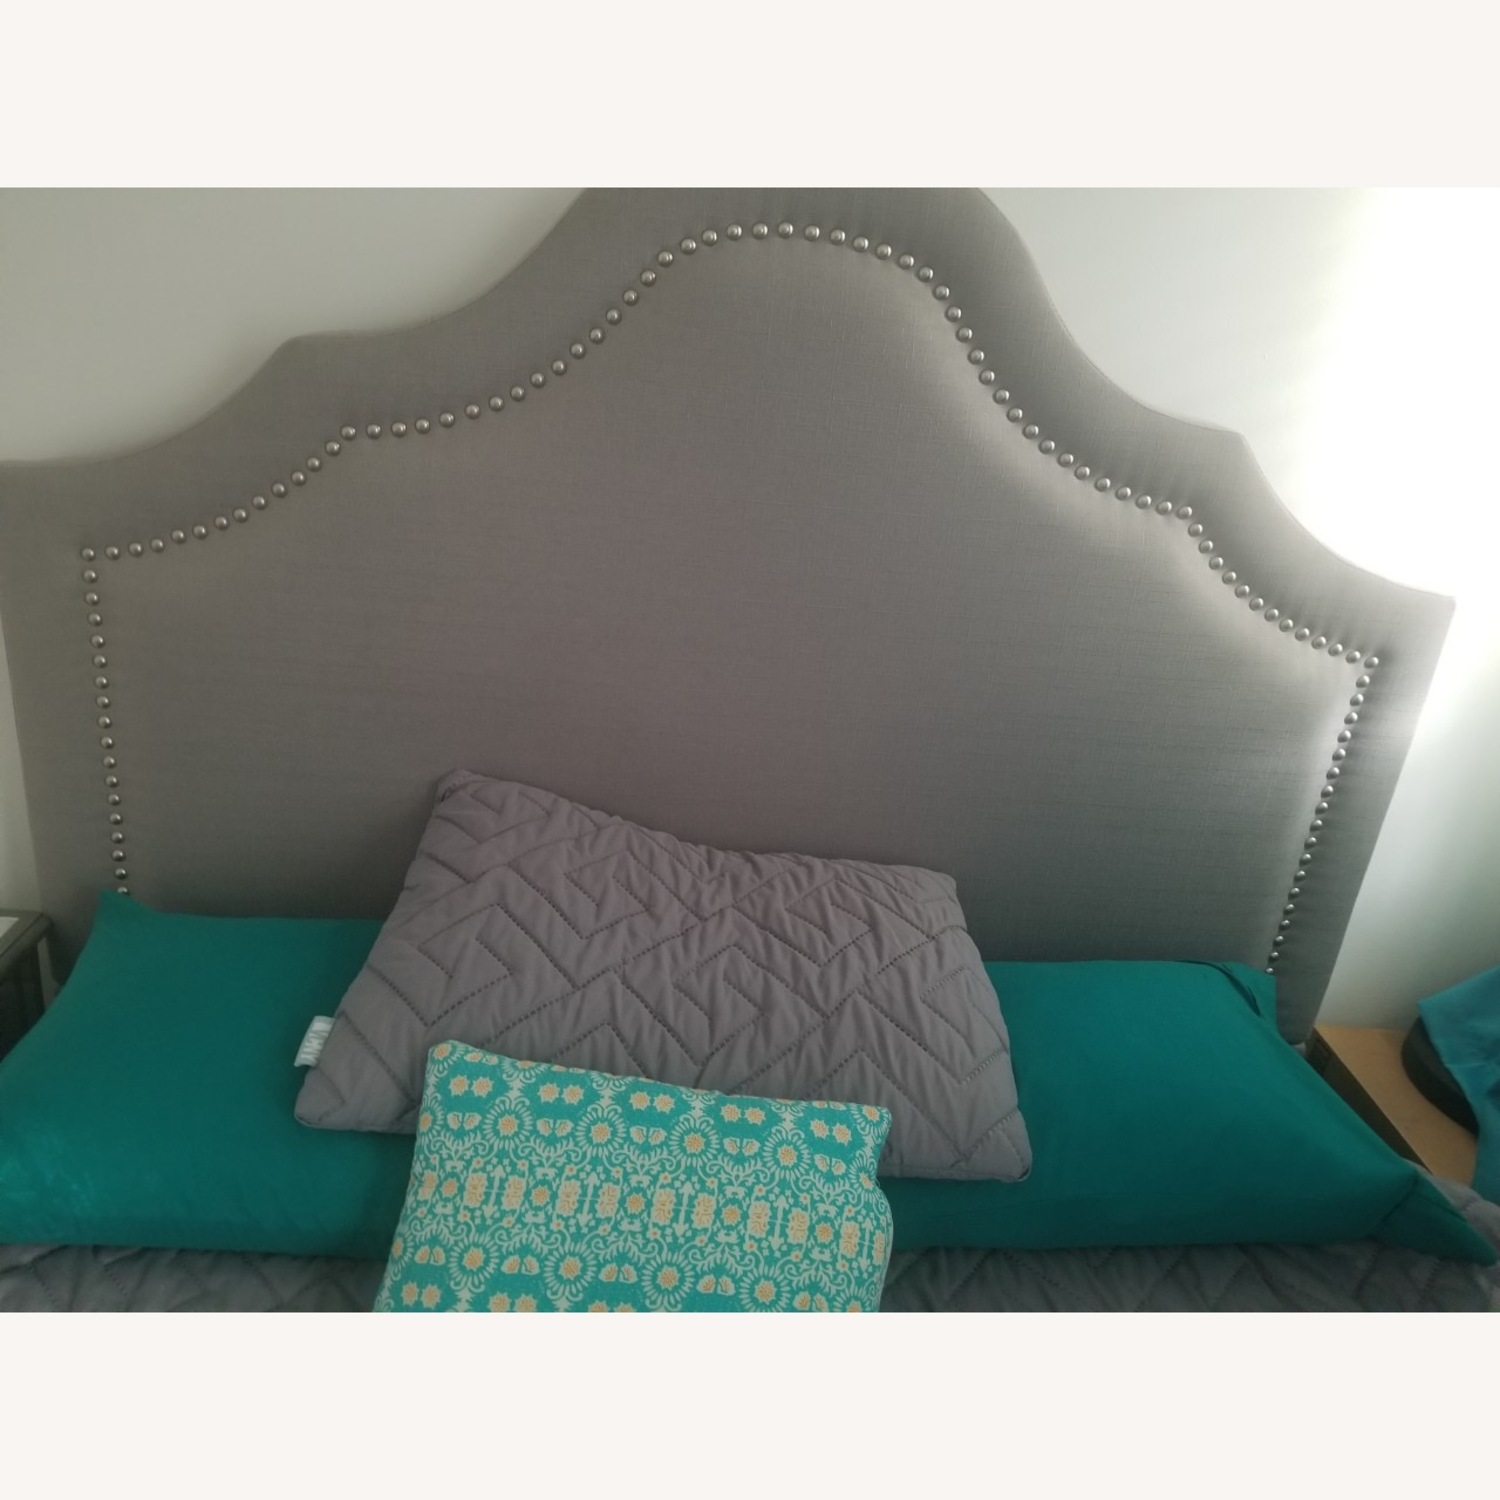 Wayfair Comfy Elegant Queen Bed - image-4